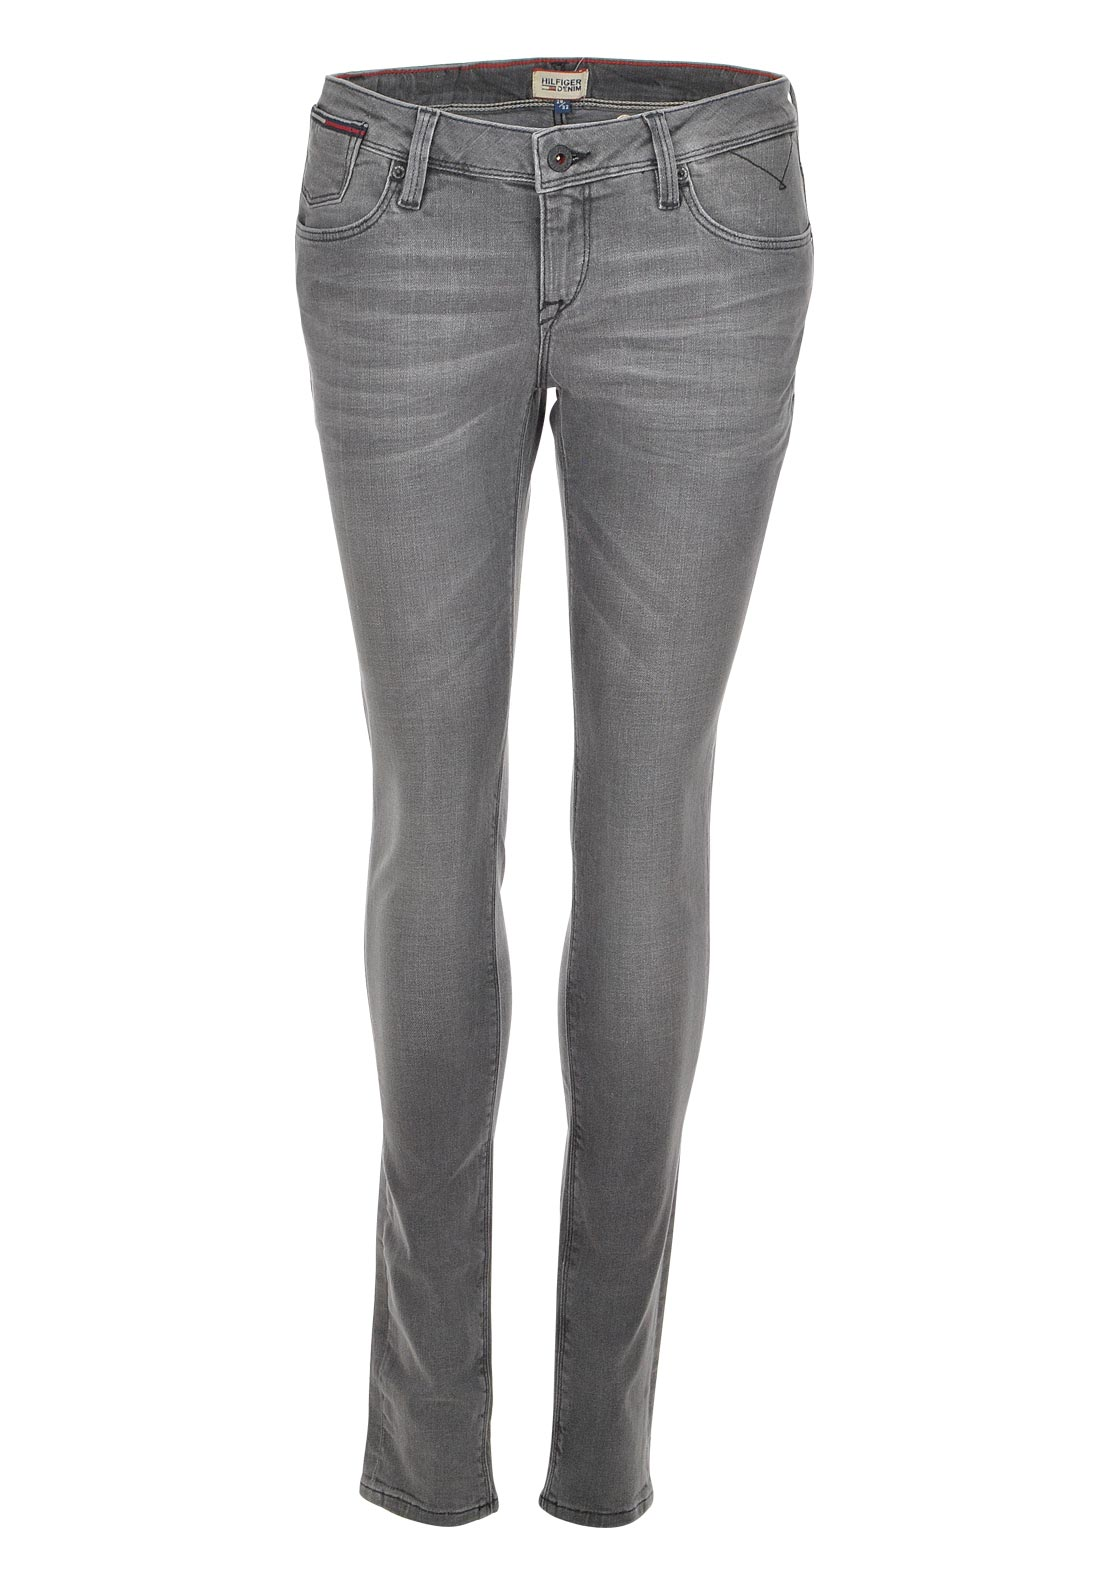 Tommy Hilfiger Womens Natalie Skinny Jeans, Grey